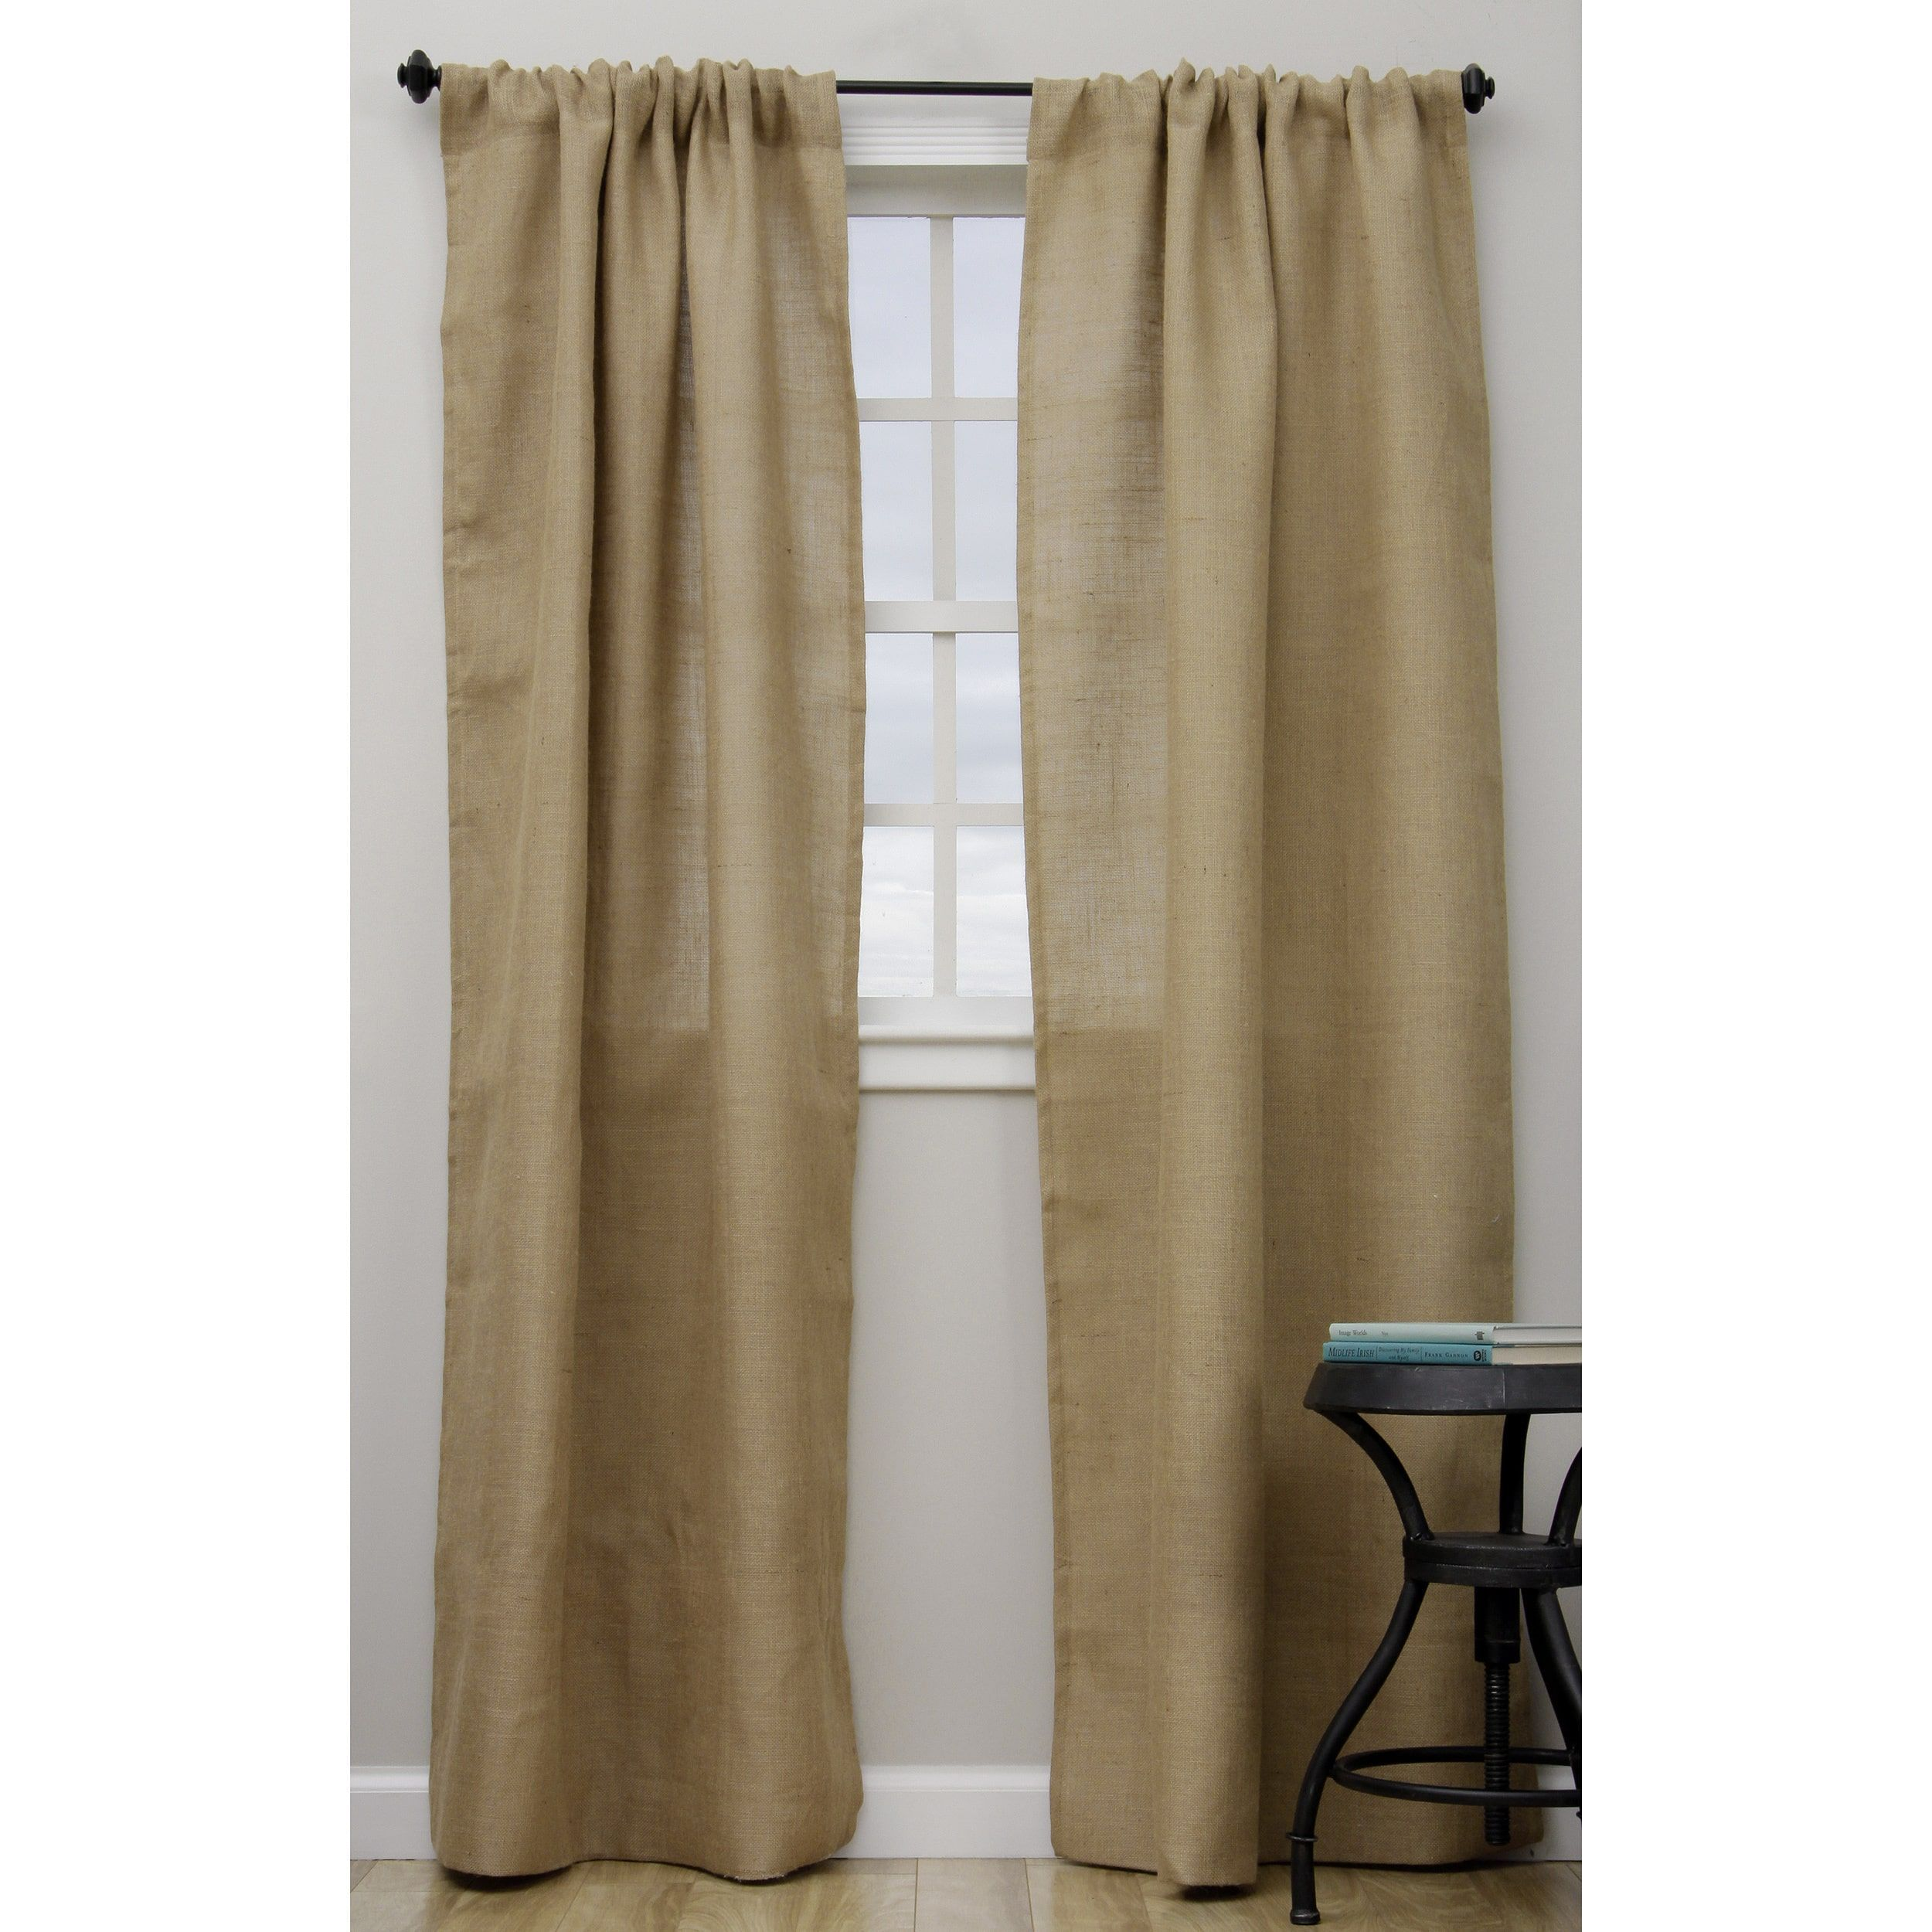 Open Weave Burlap Unlined Curtain Panel Natural 42 X 84 84 Inches Saro Lifestyle Jute Solid Panel Curtains 96 Inch Curtains Drapes Curtains